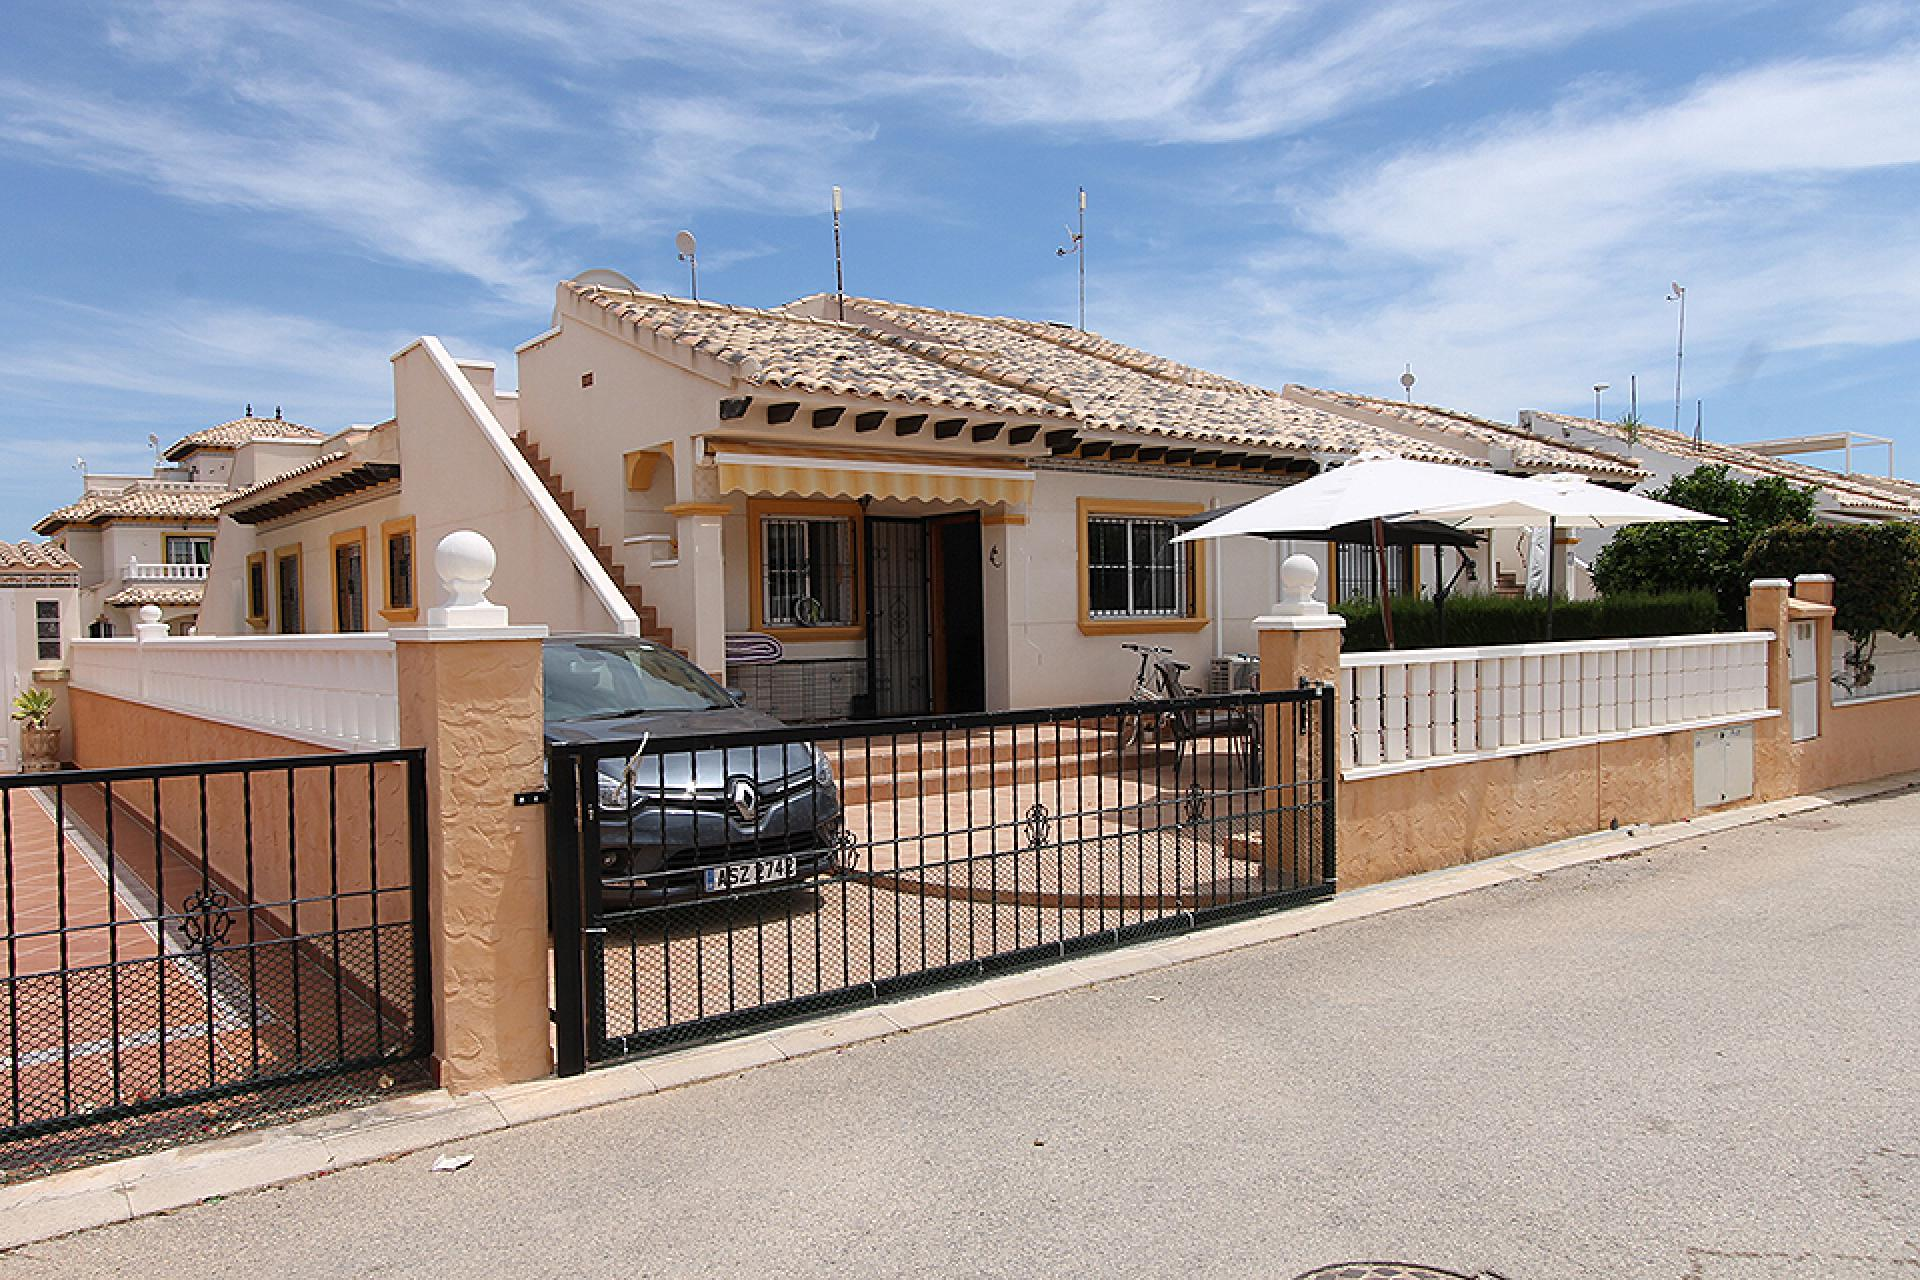 For sale: 2 bedroom bungalow in Cabo Roig, Costa Blanca